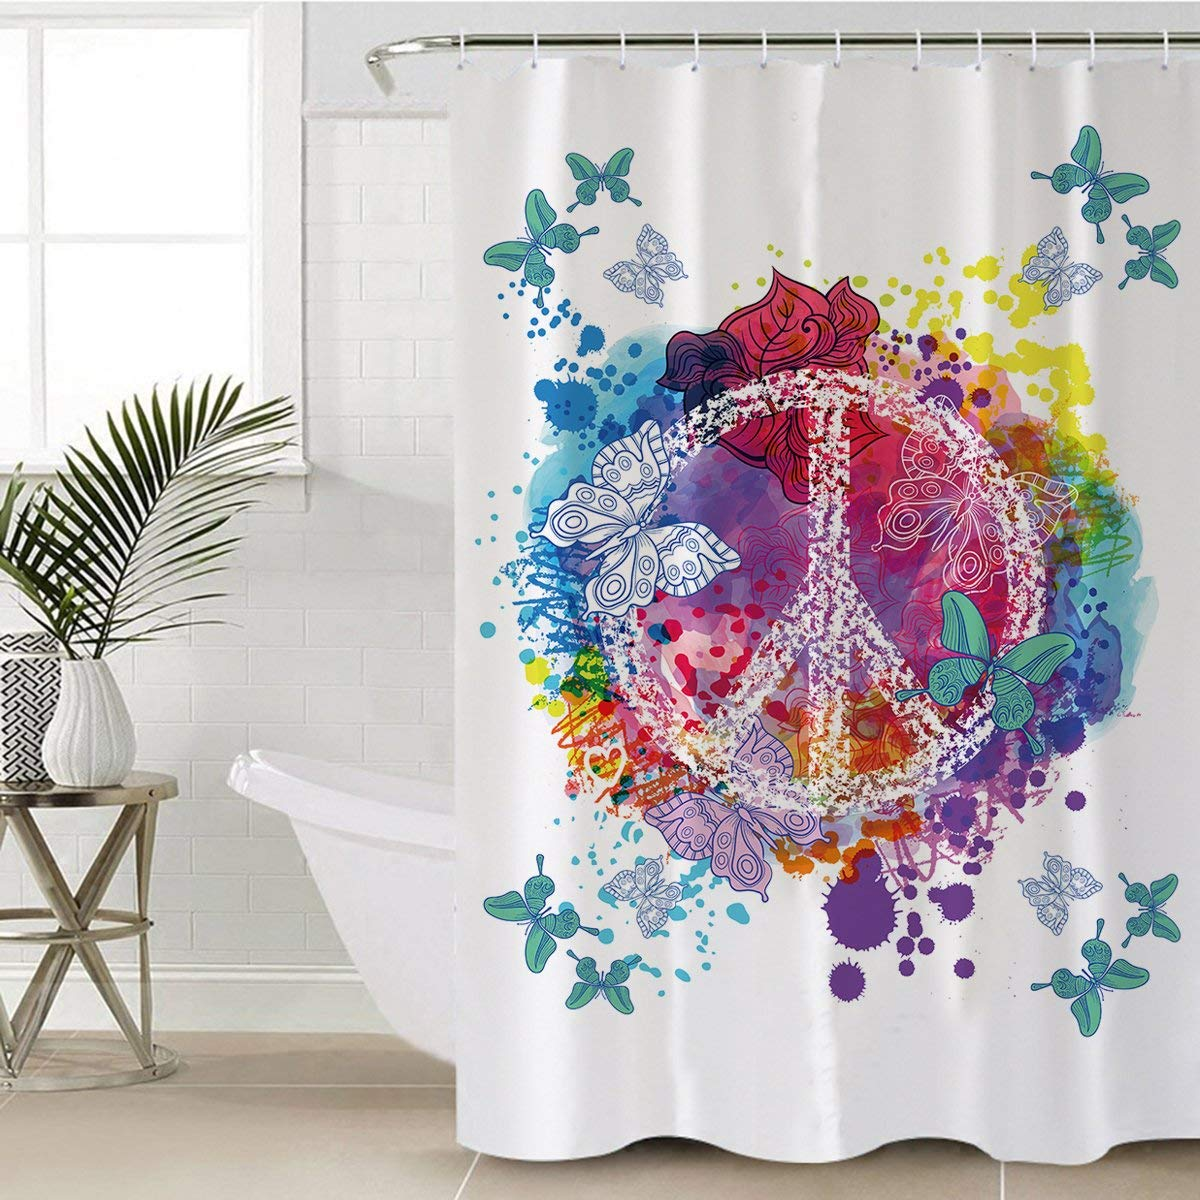 Get Quotations Sleepwish Butterfly Shower Curtain Fabric Hippie Turquoise Butterflies Peace Sign Water Proof Mold Resistant